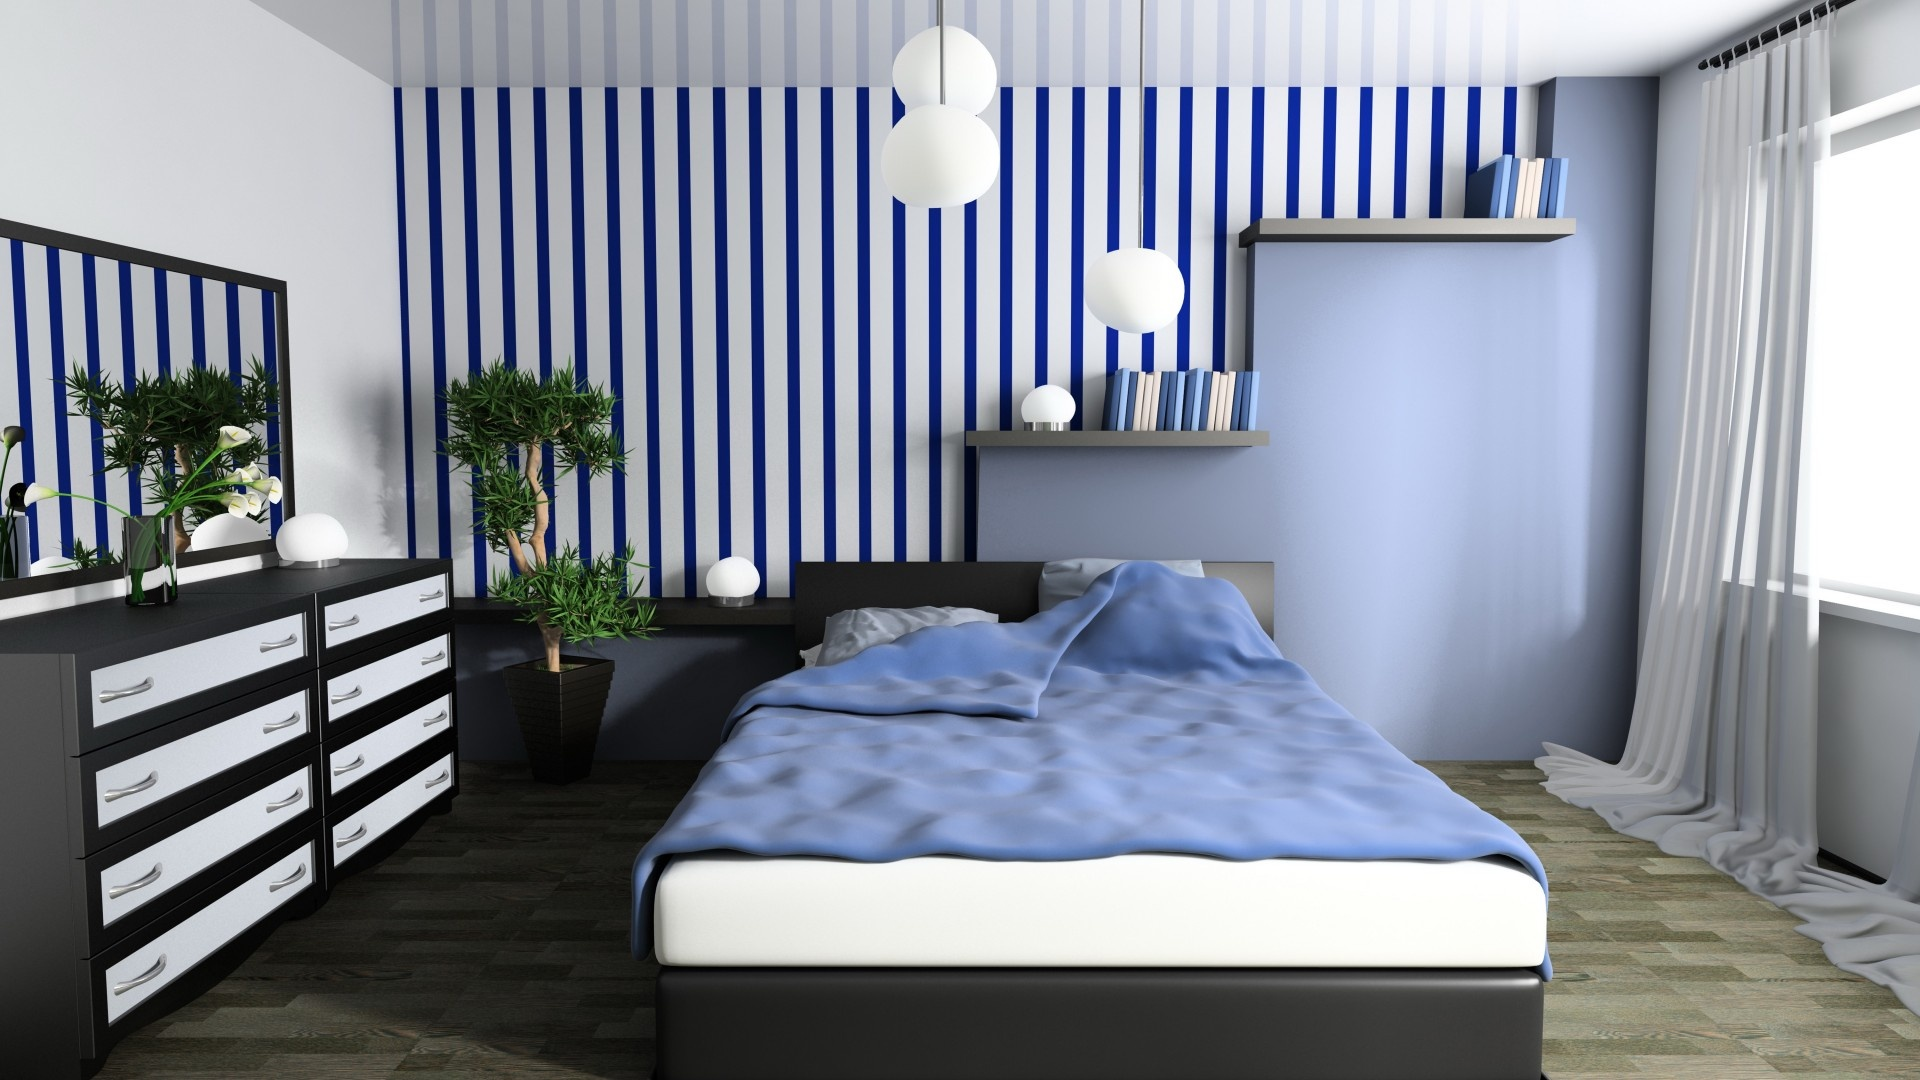 Magnificent Blue Bedroom Interior Design 1920 x 1080 · 440 kB · jpeg